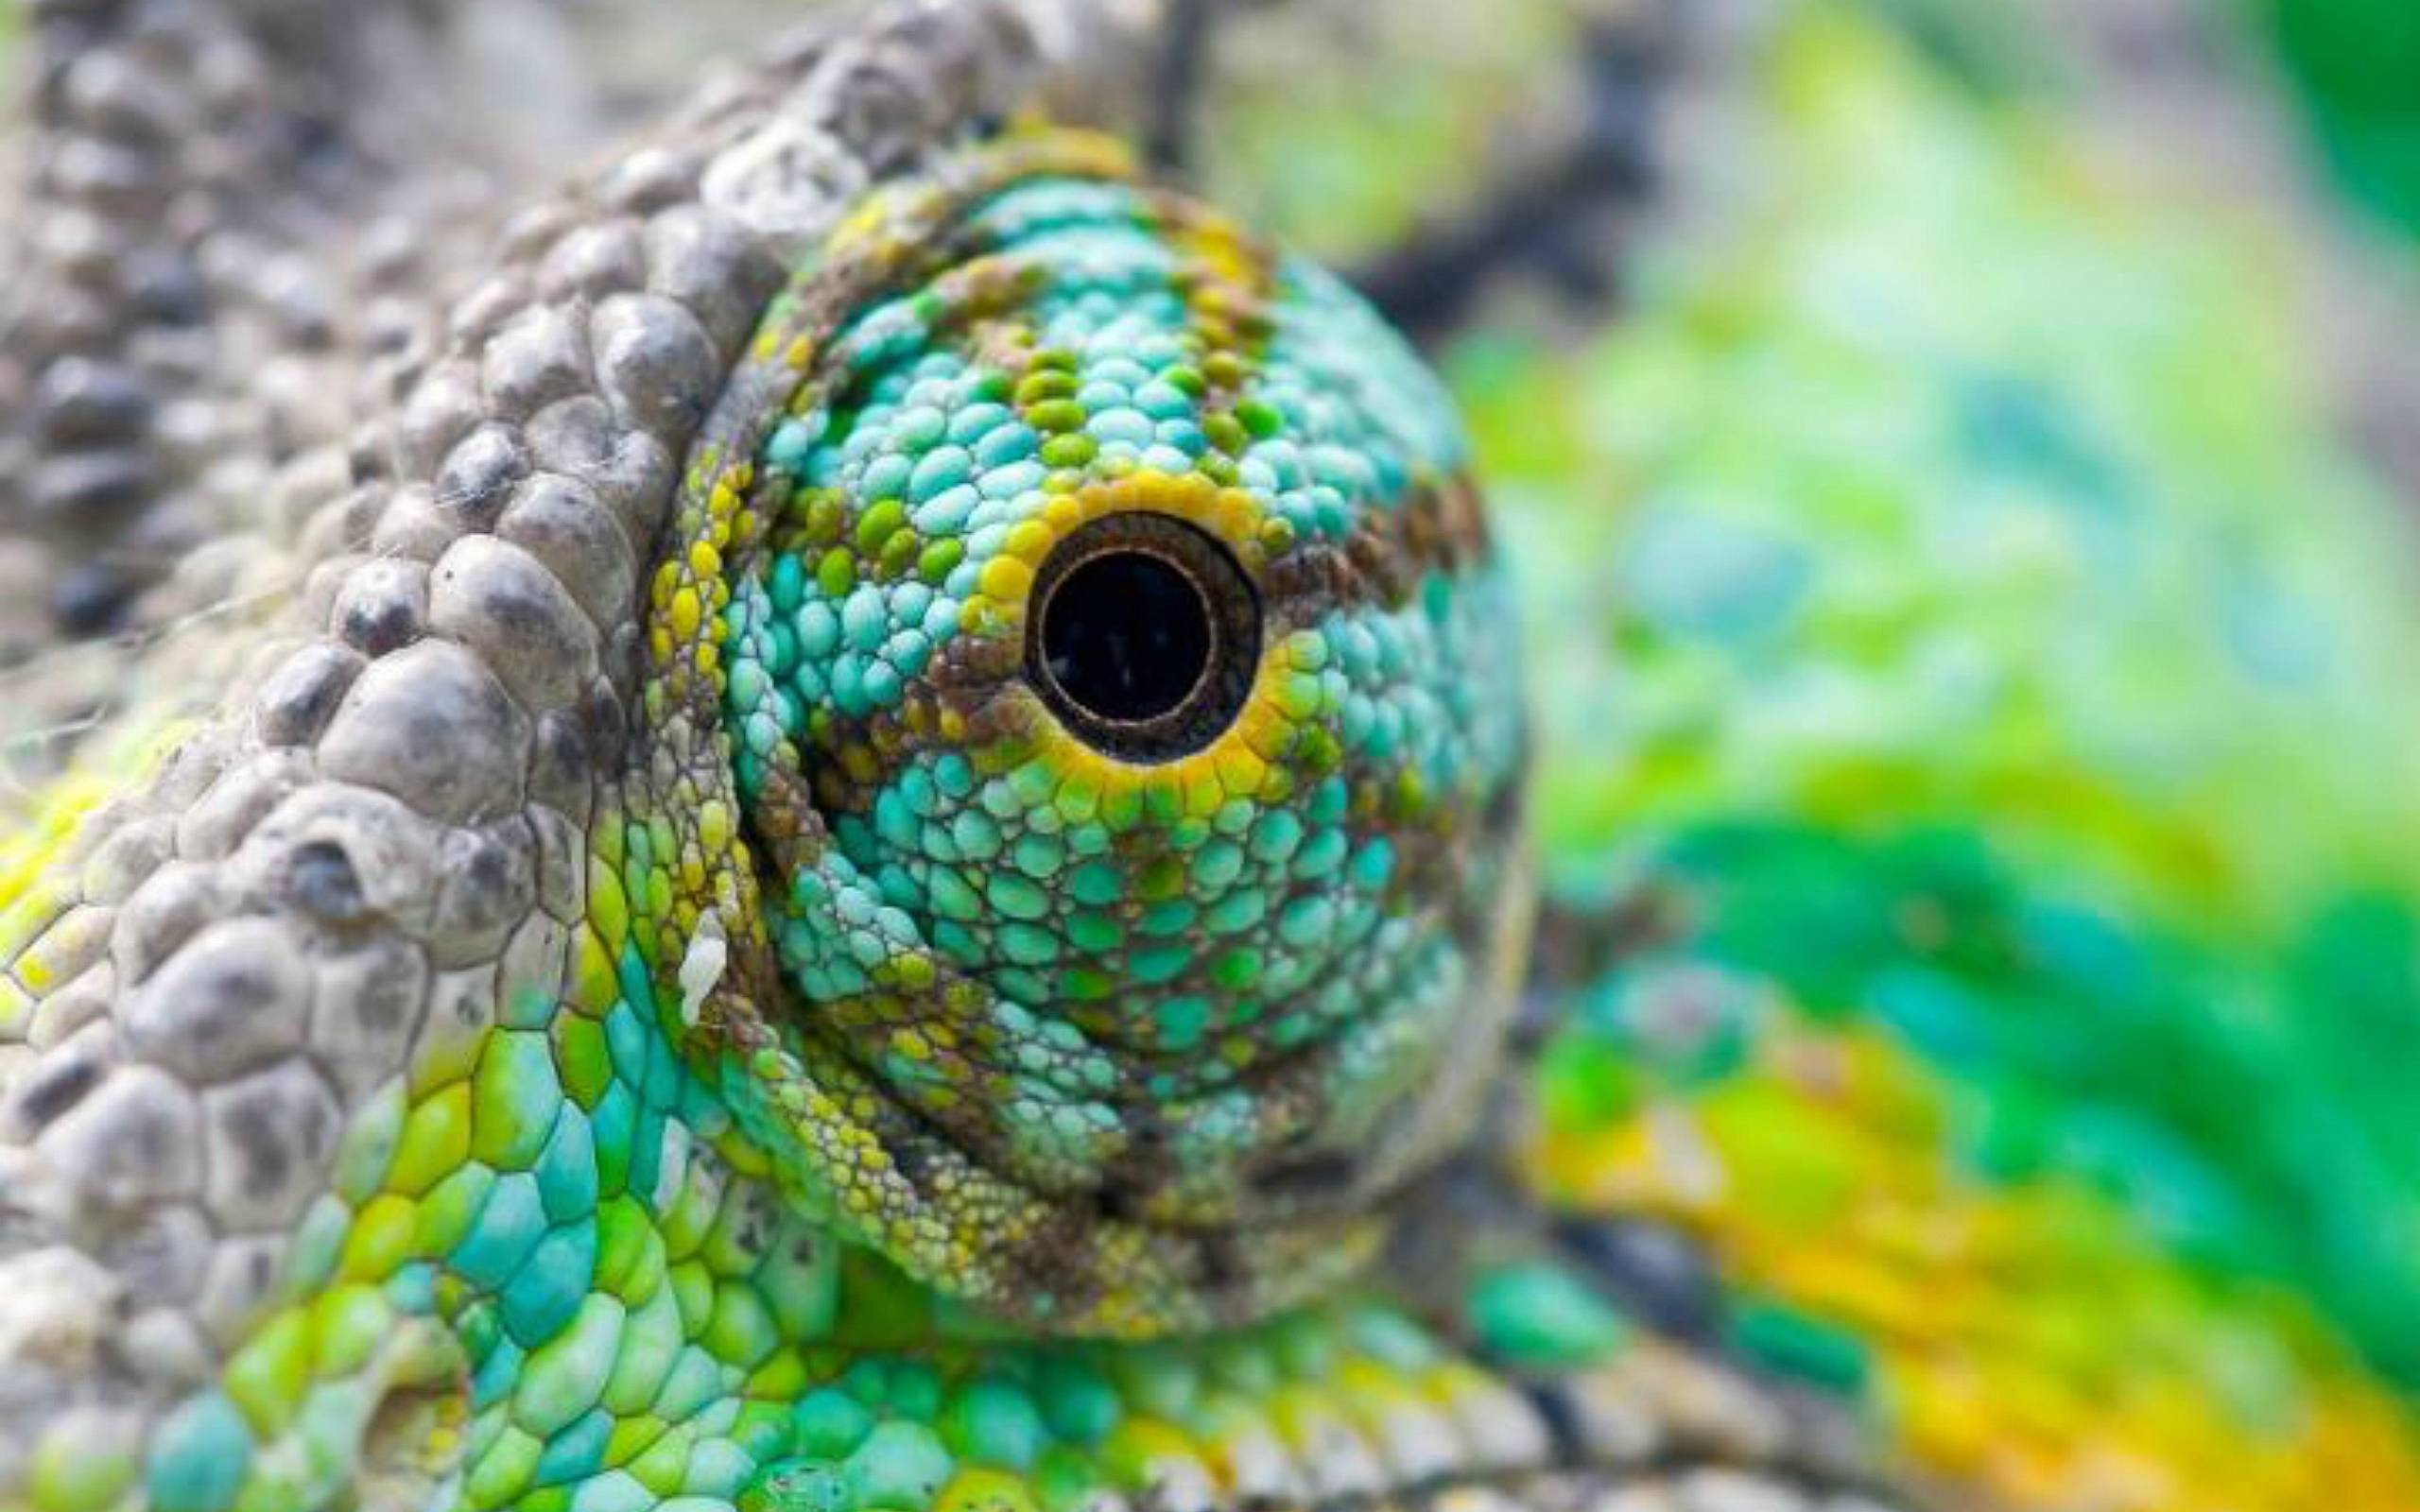 Colorful Lizard Eyes Wallpaper | Paravu.com | HD Wallpaper and ...